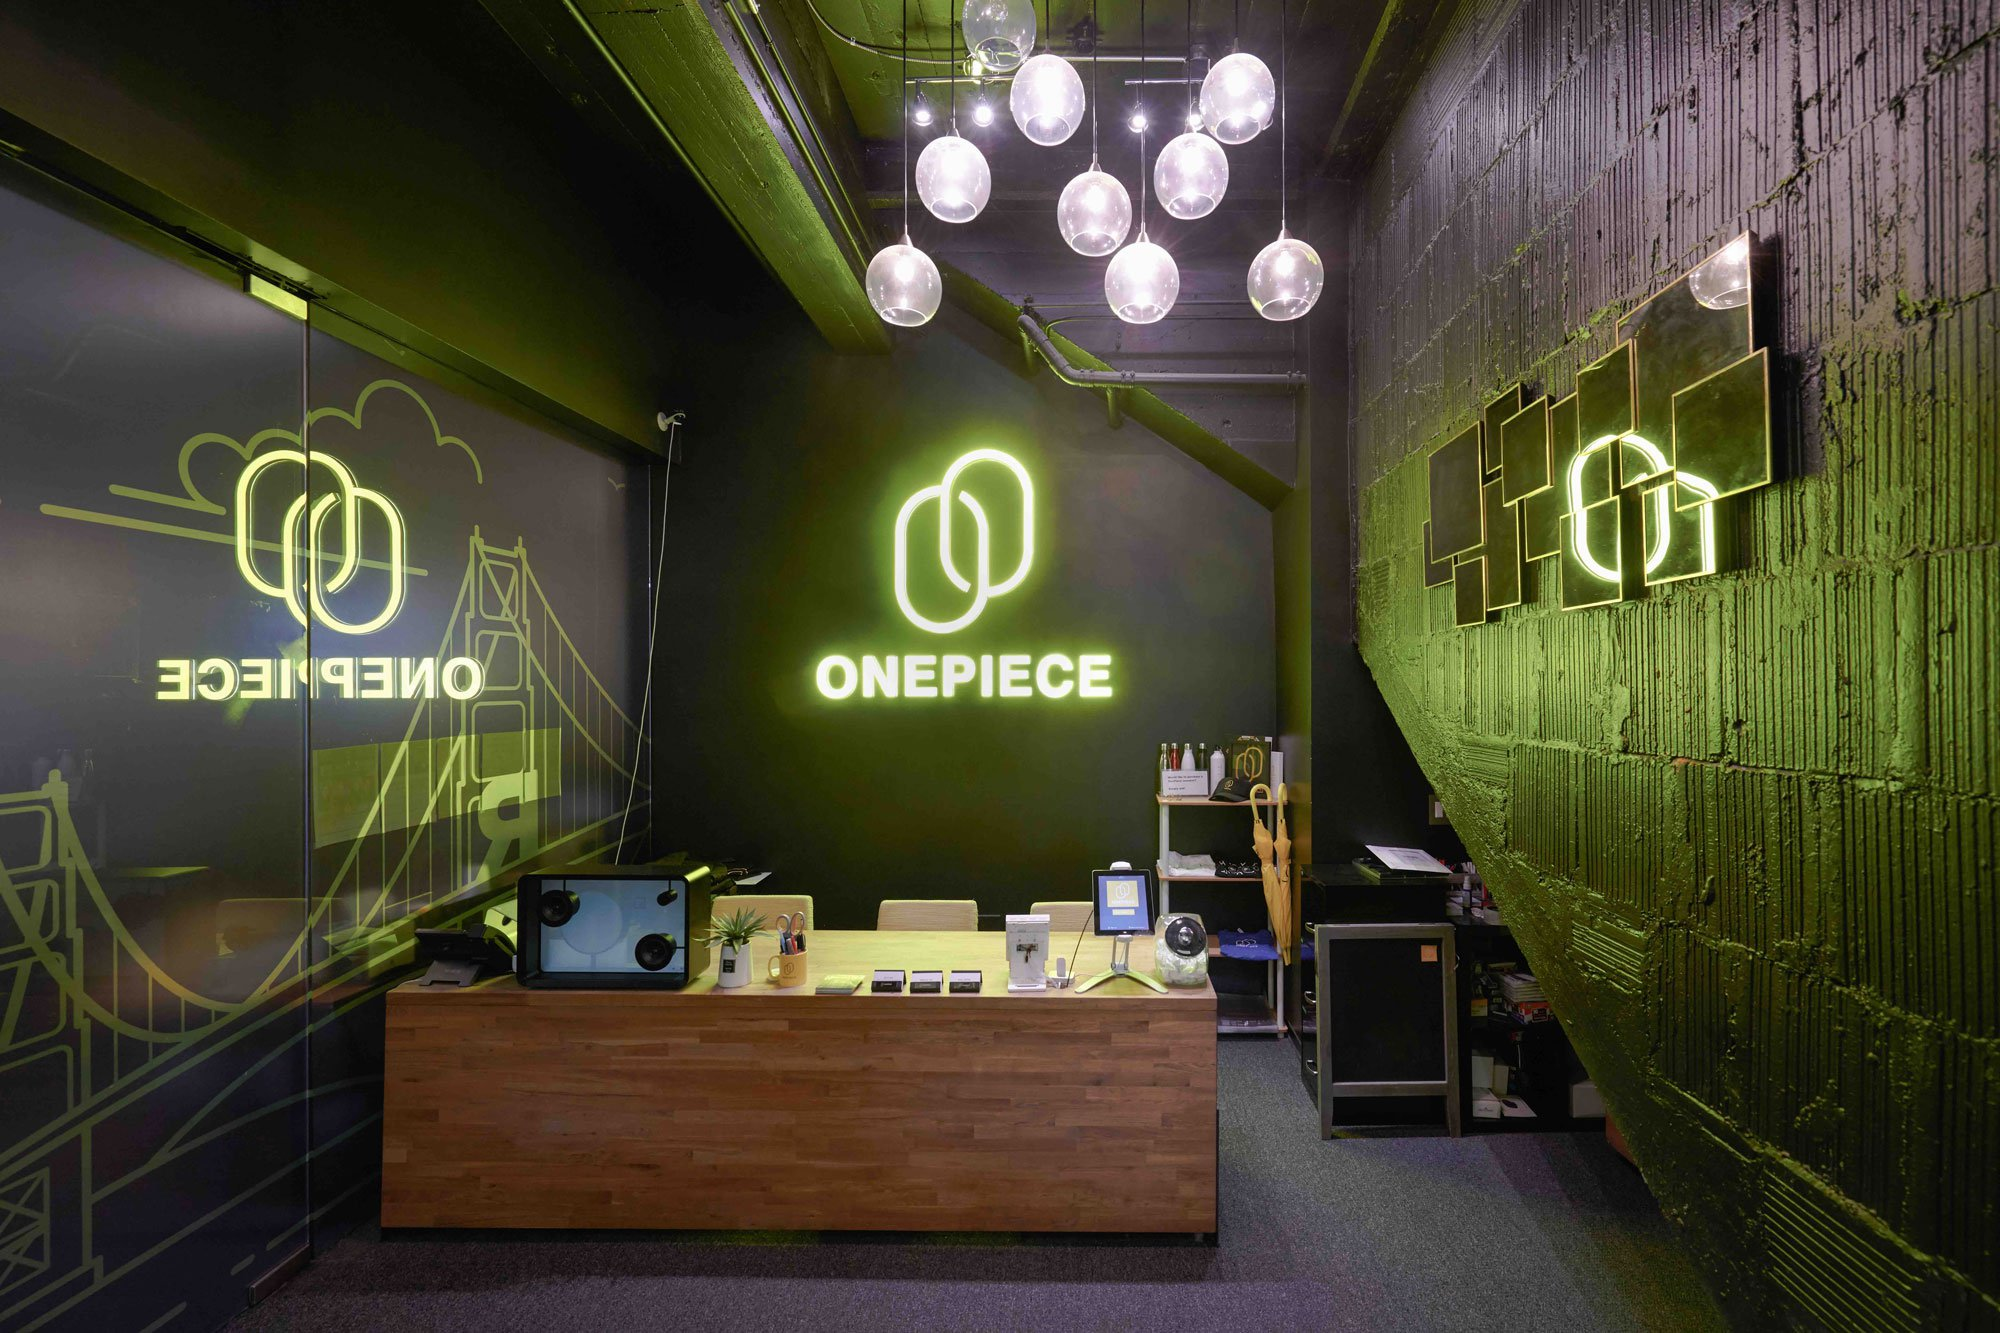 OnePiece Work San Francisco lobby featuring rustic wood finishes, industrial-chic decor, and neon-lit signage